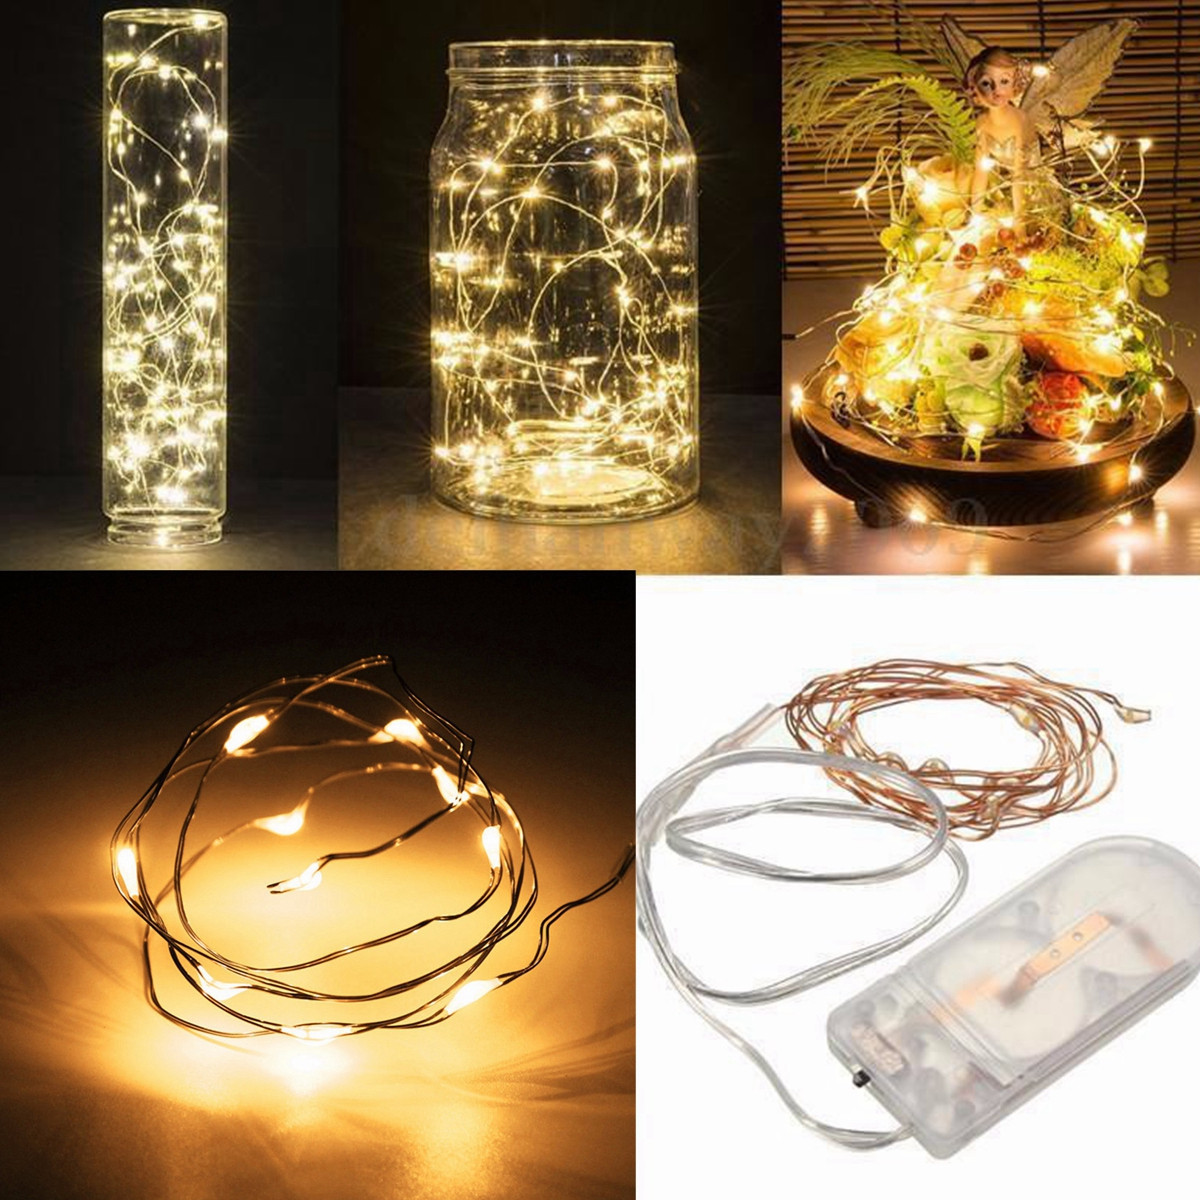 1/2M Waterproof Fairy Lights LED String Light For Christmas Holiday Party Garden Bedroom Wedding Decoration Outdoor Indoor Lamp